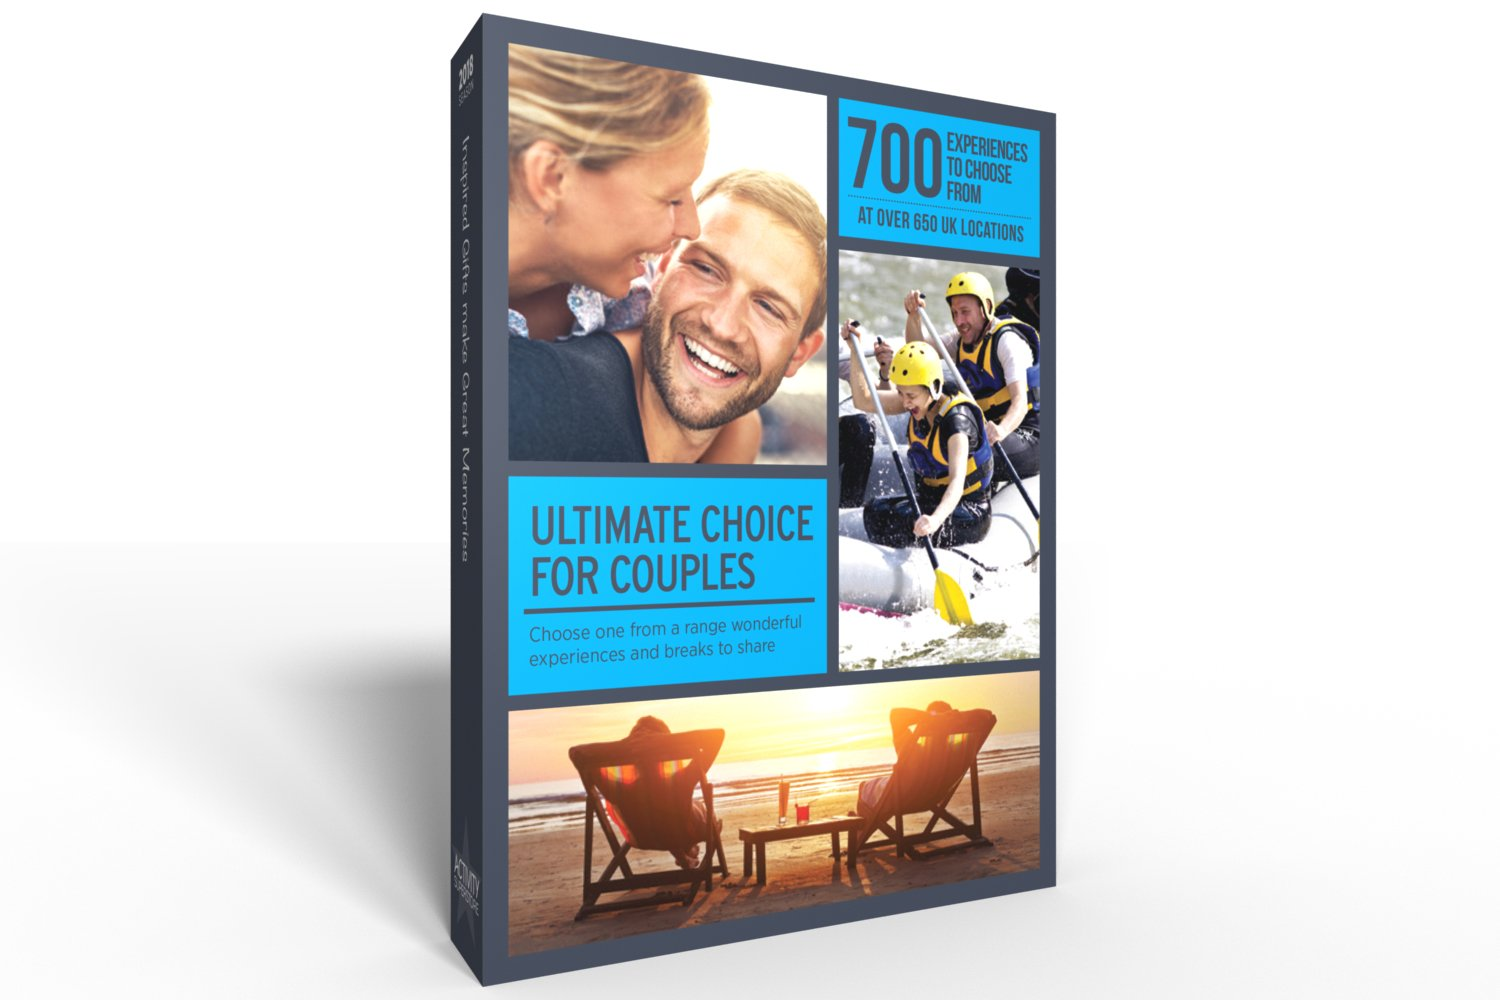 b7cae4bfea53 Activity Superstore Ultimate Choice for Couples Gift Experience - Whatever  their passion, personality, niche, or forte, they're sure to find an  experience ...